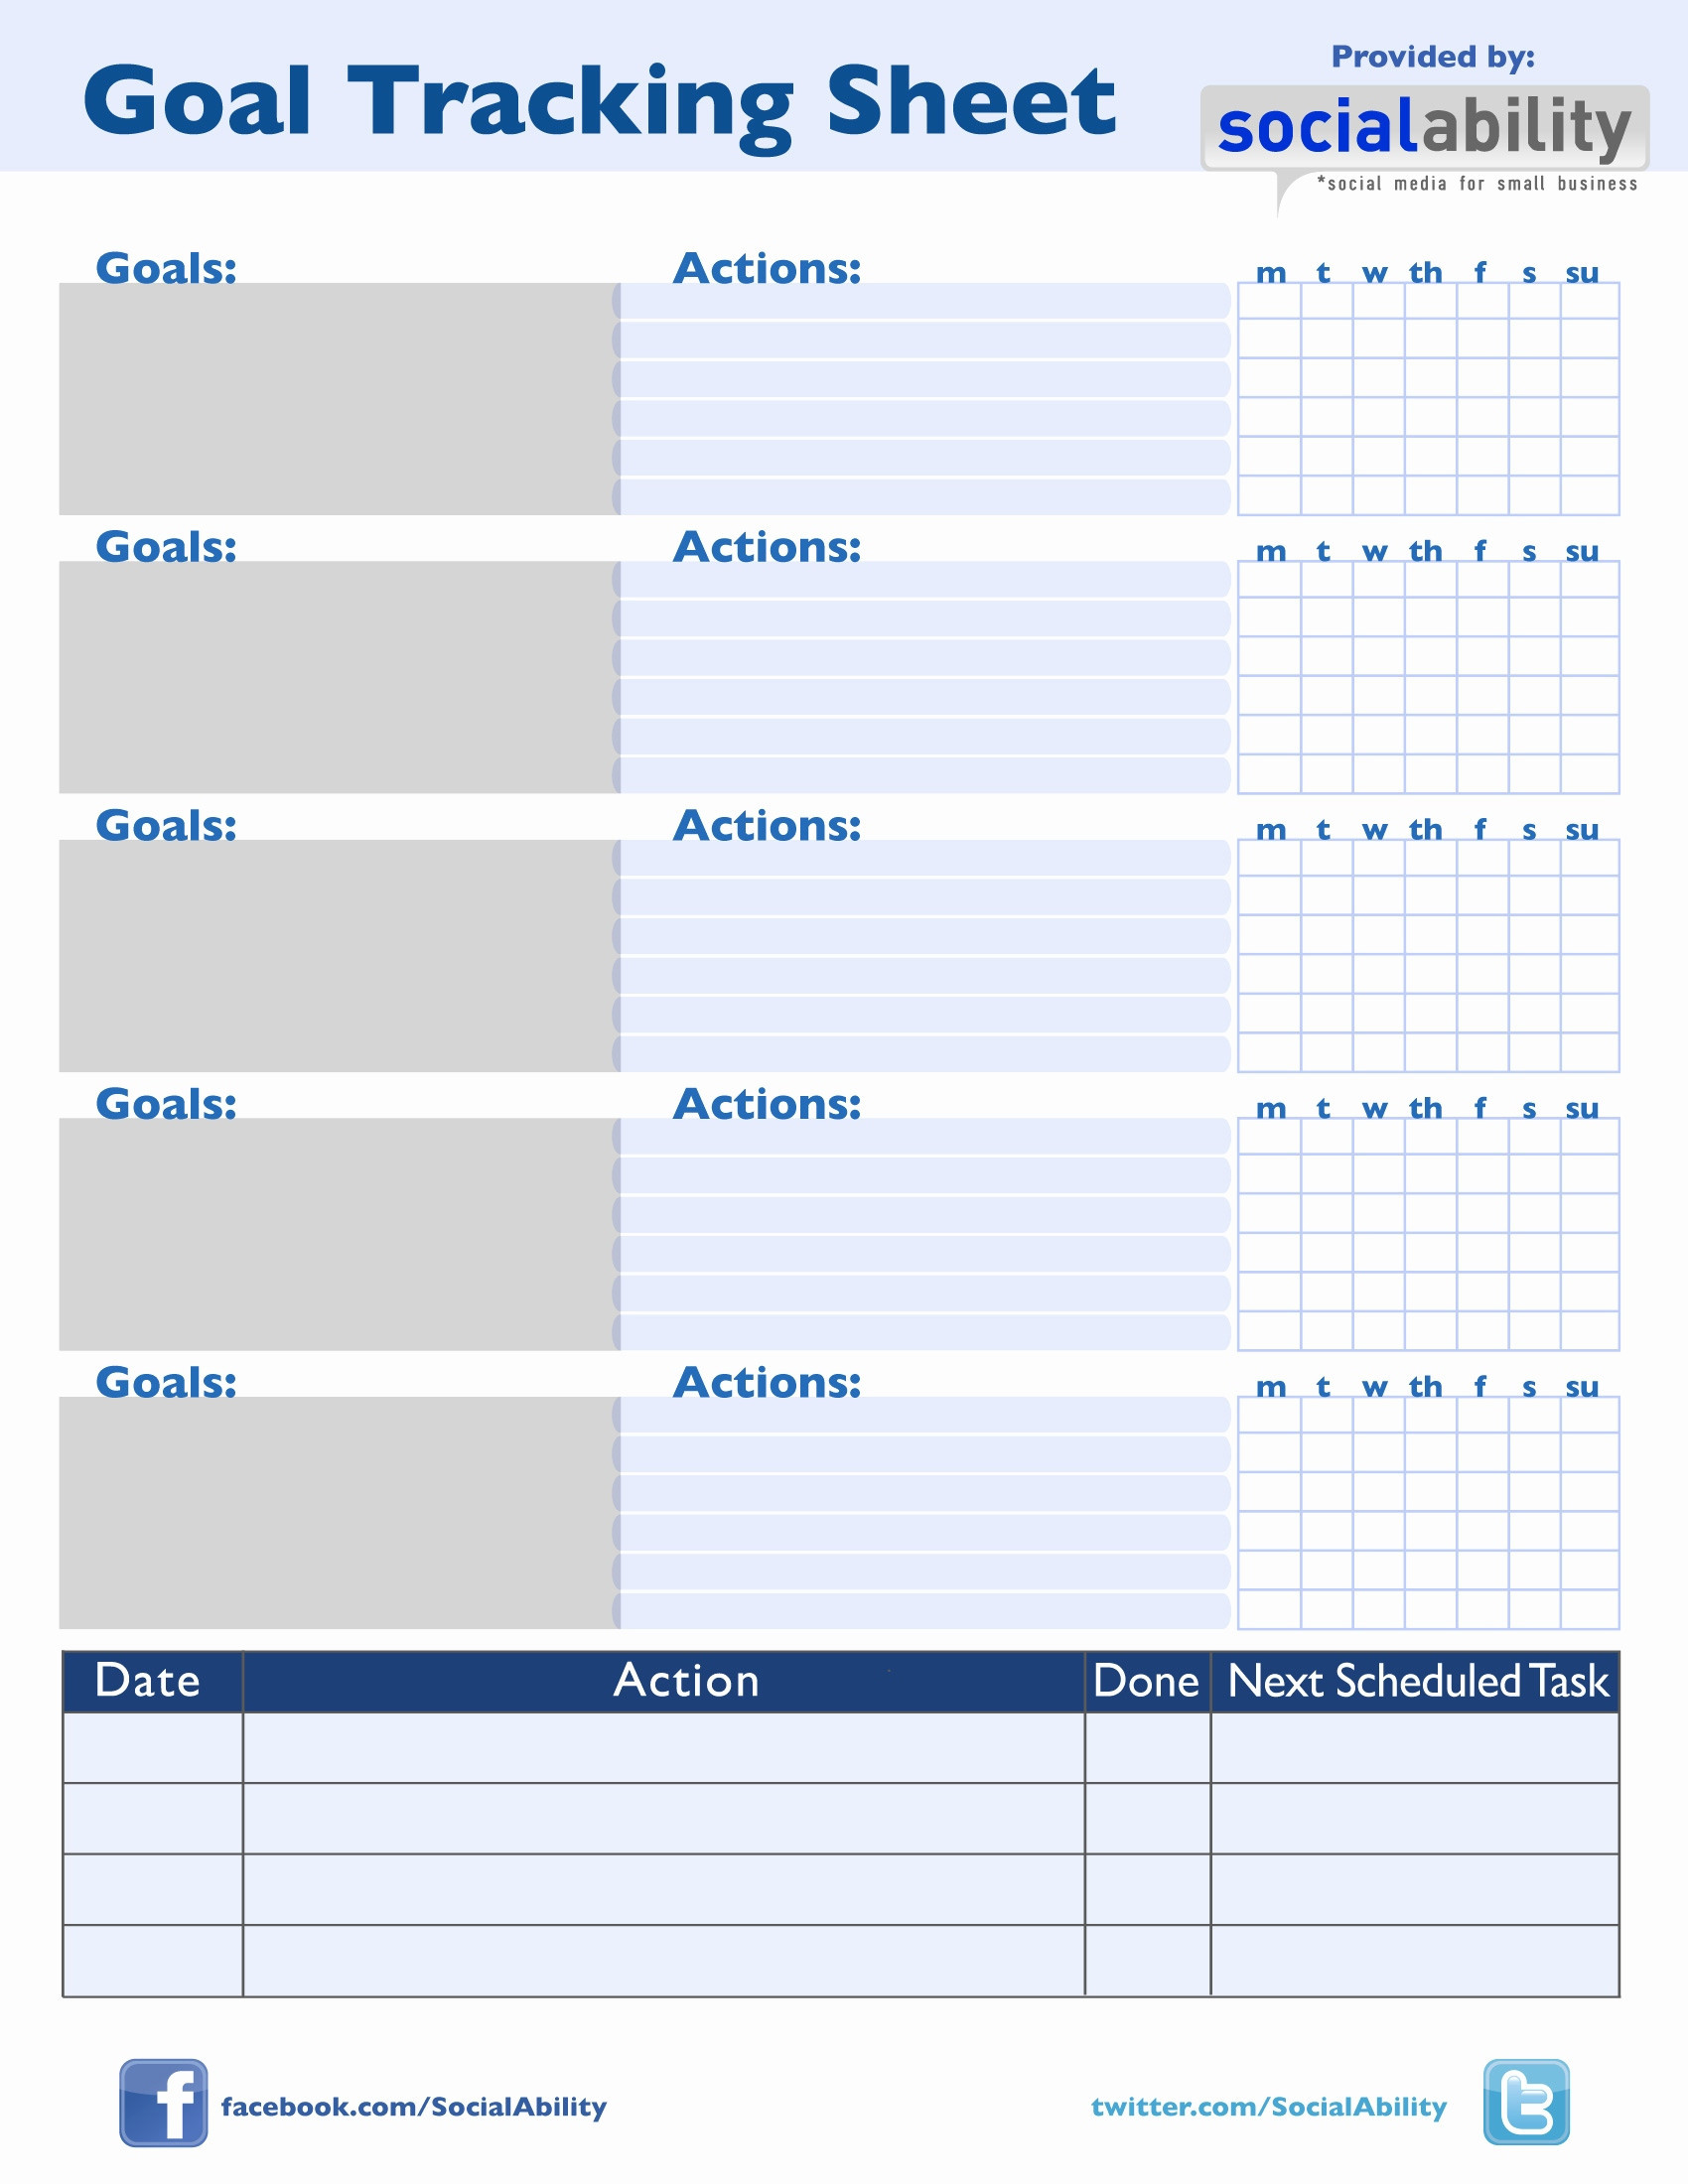 Iep Goal Tracking Sheets Awesome Labor Tracking Adsheet for Goal Tracker Template Awesome